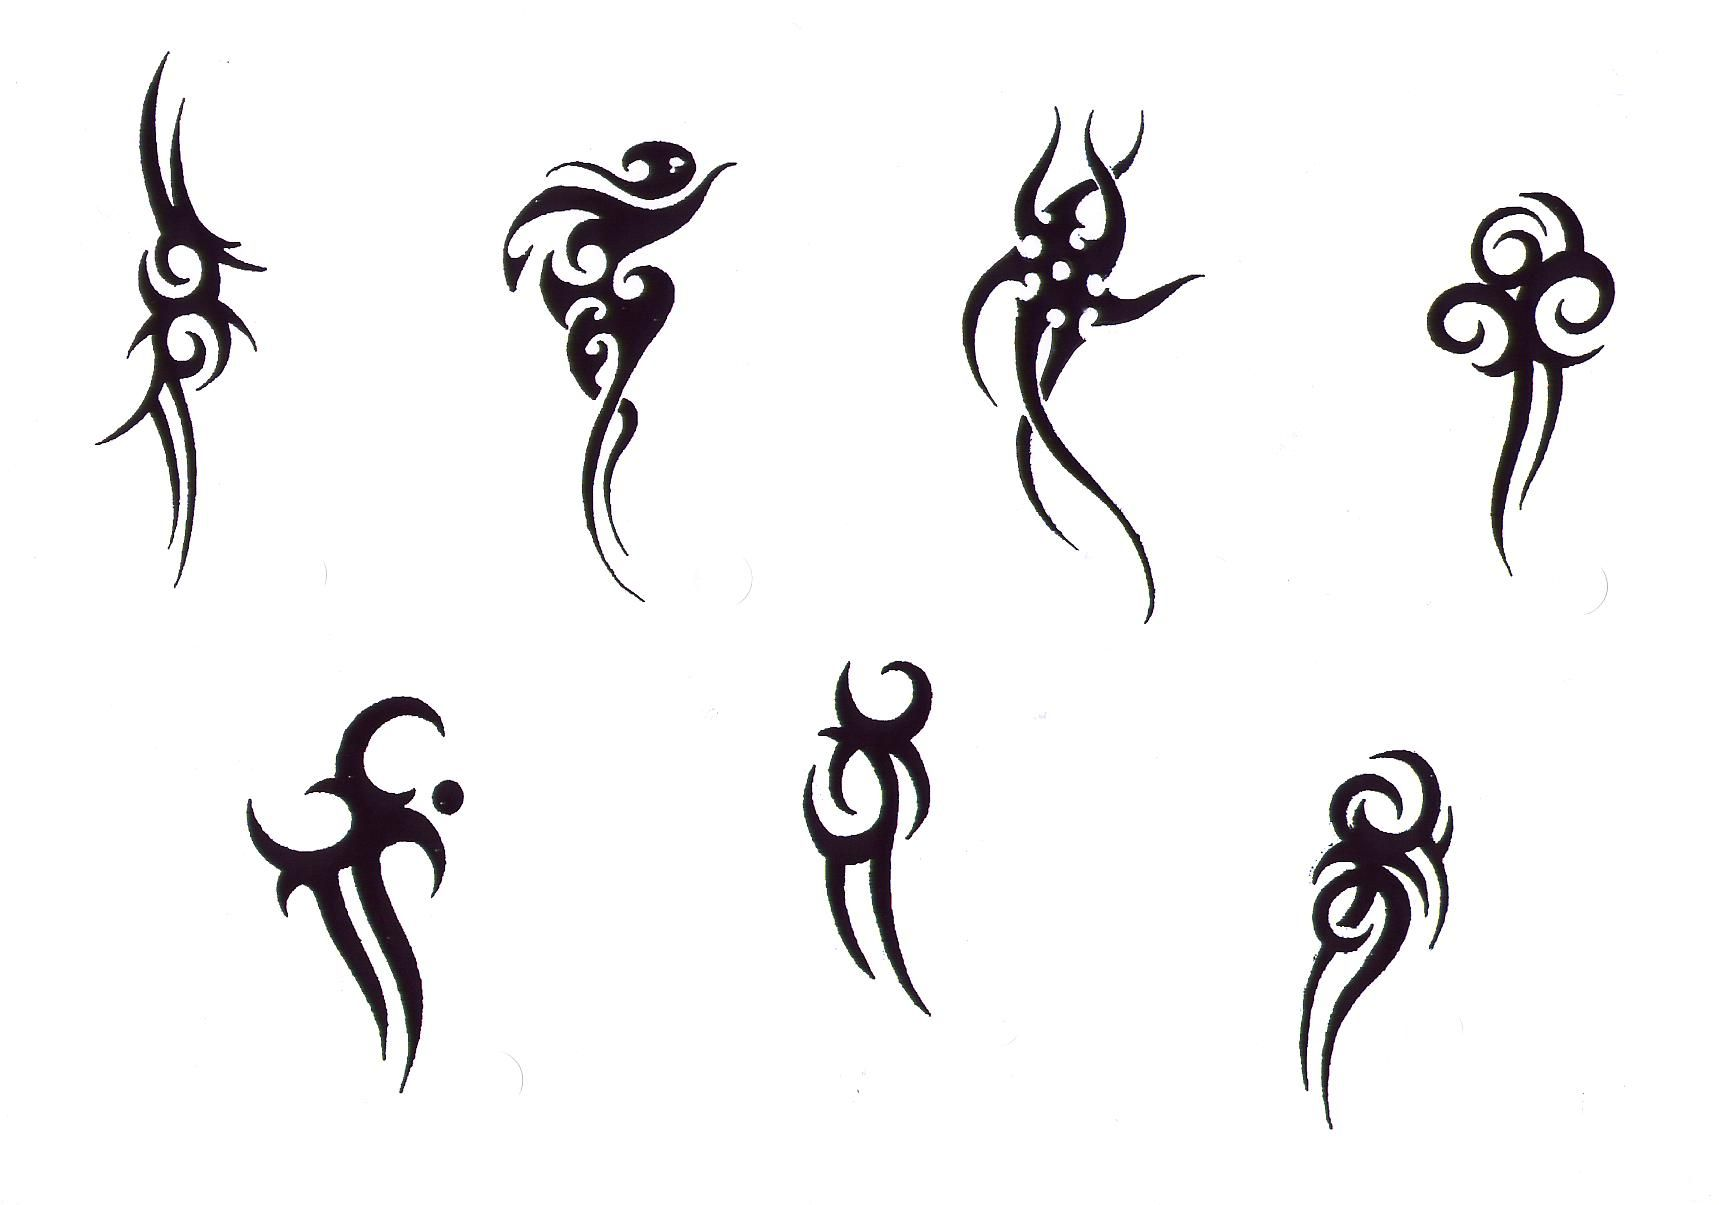 Tribal Tattoo Designs For Your Skin Tattoo Hunter Small Tribal Tattoos Simple Tattoo Designs Tribal Tattoos